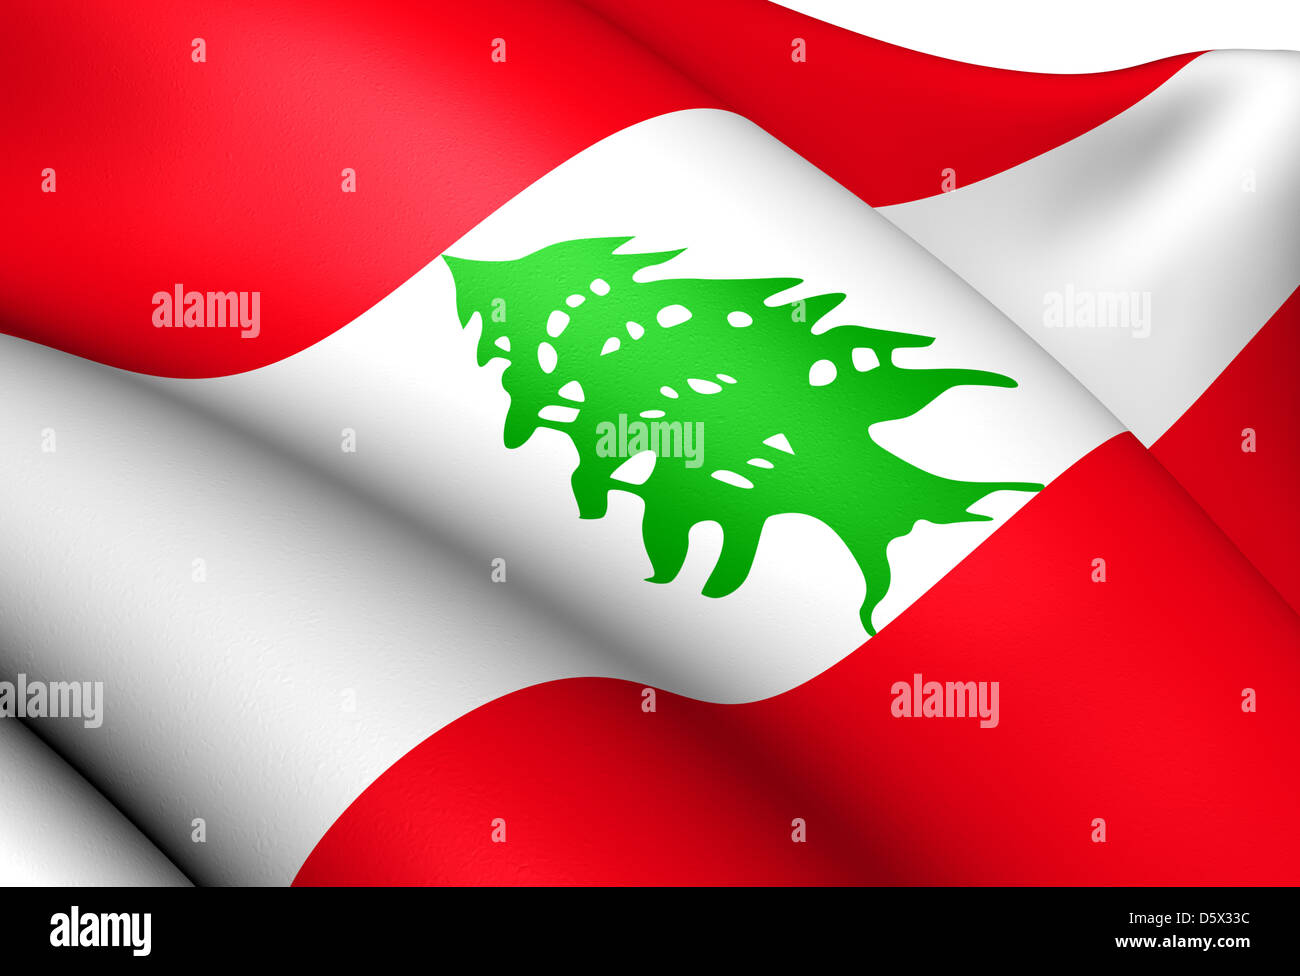 flagge des libanon hautnah stockfoto bild 55277584 alamy. Black Bedroom Furniture Sets. Home Design Ideas